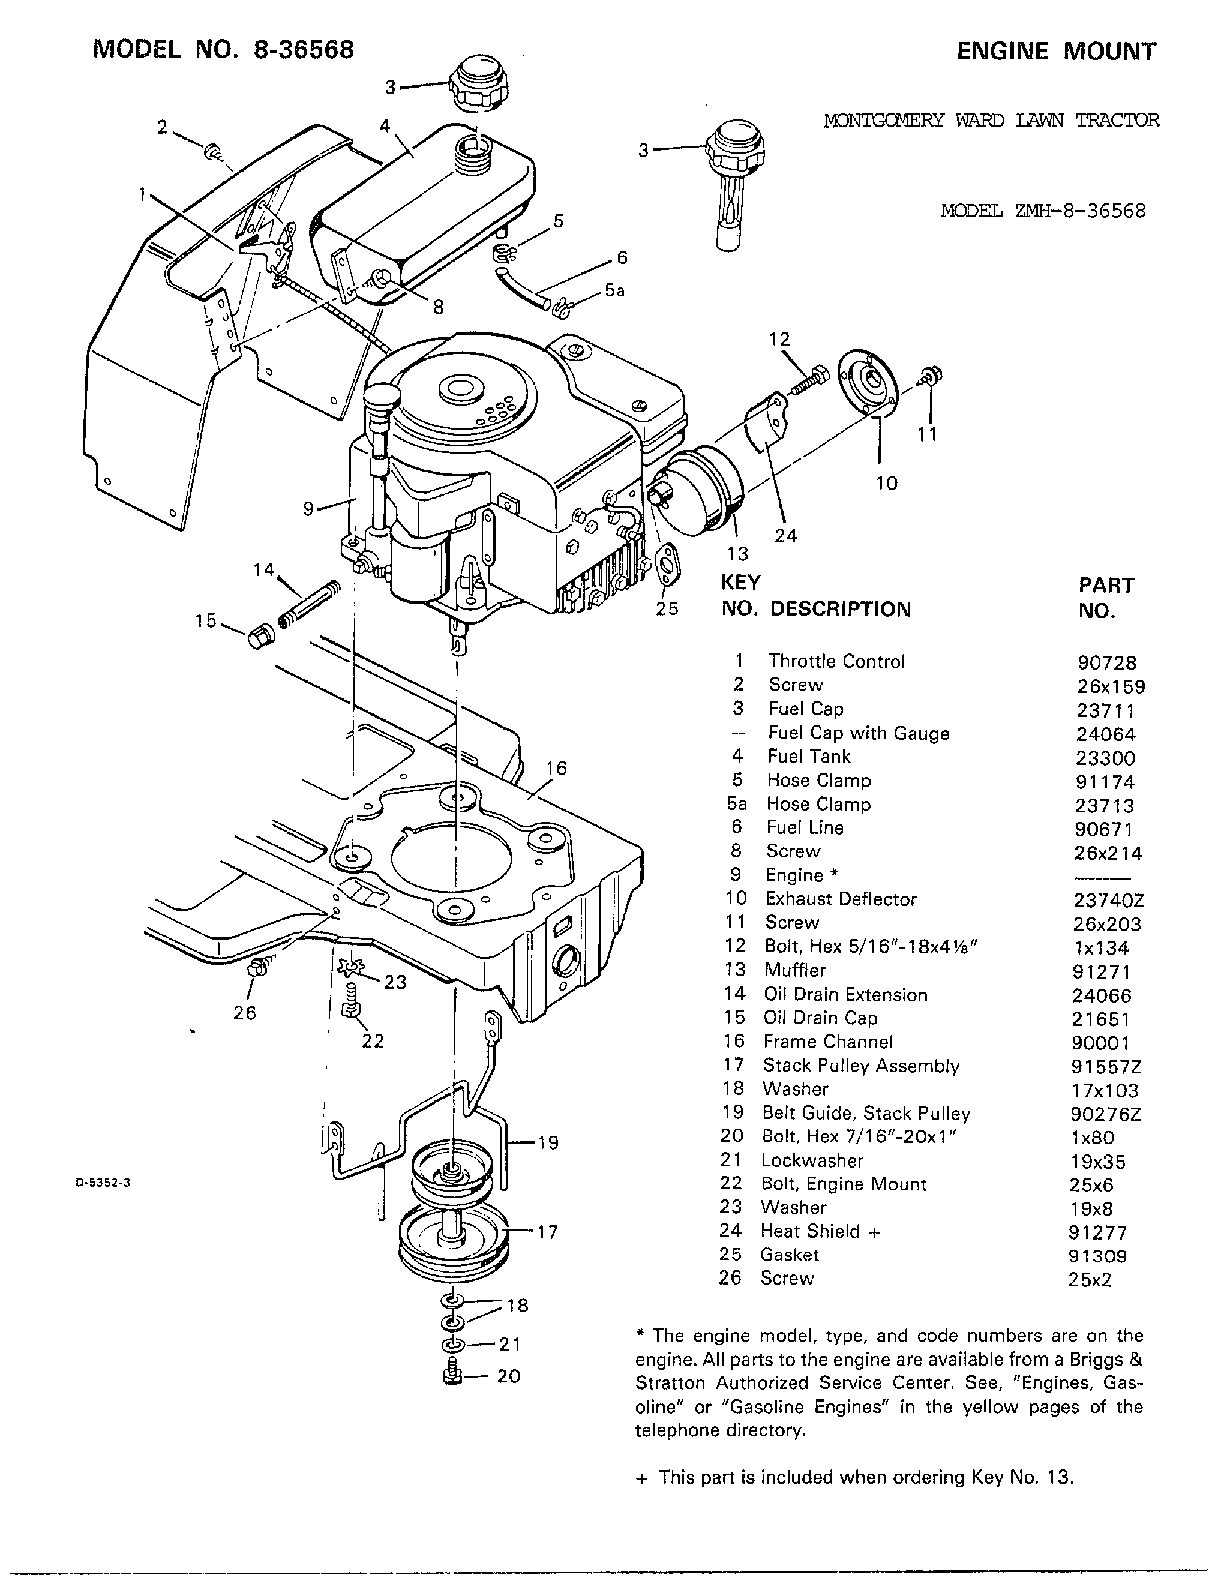 ENGINE MOUNT Diagram & Parts List for Model 836568 Murray